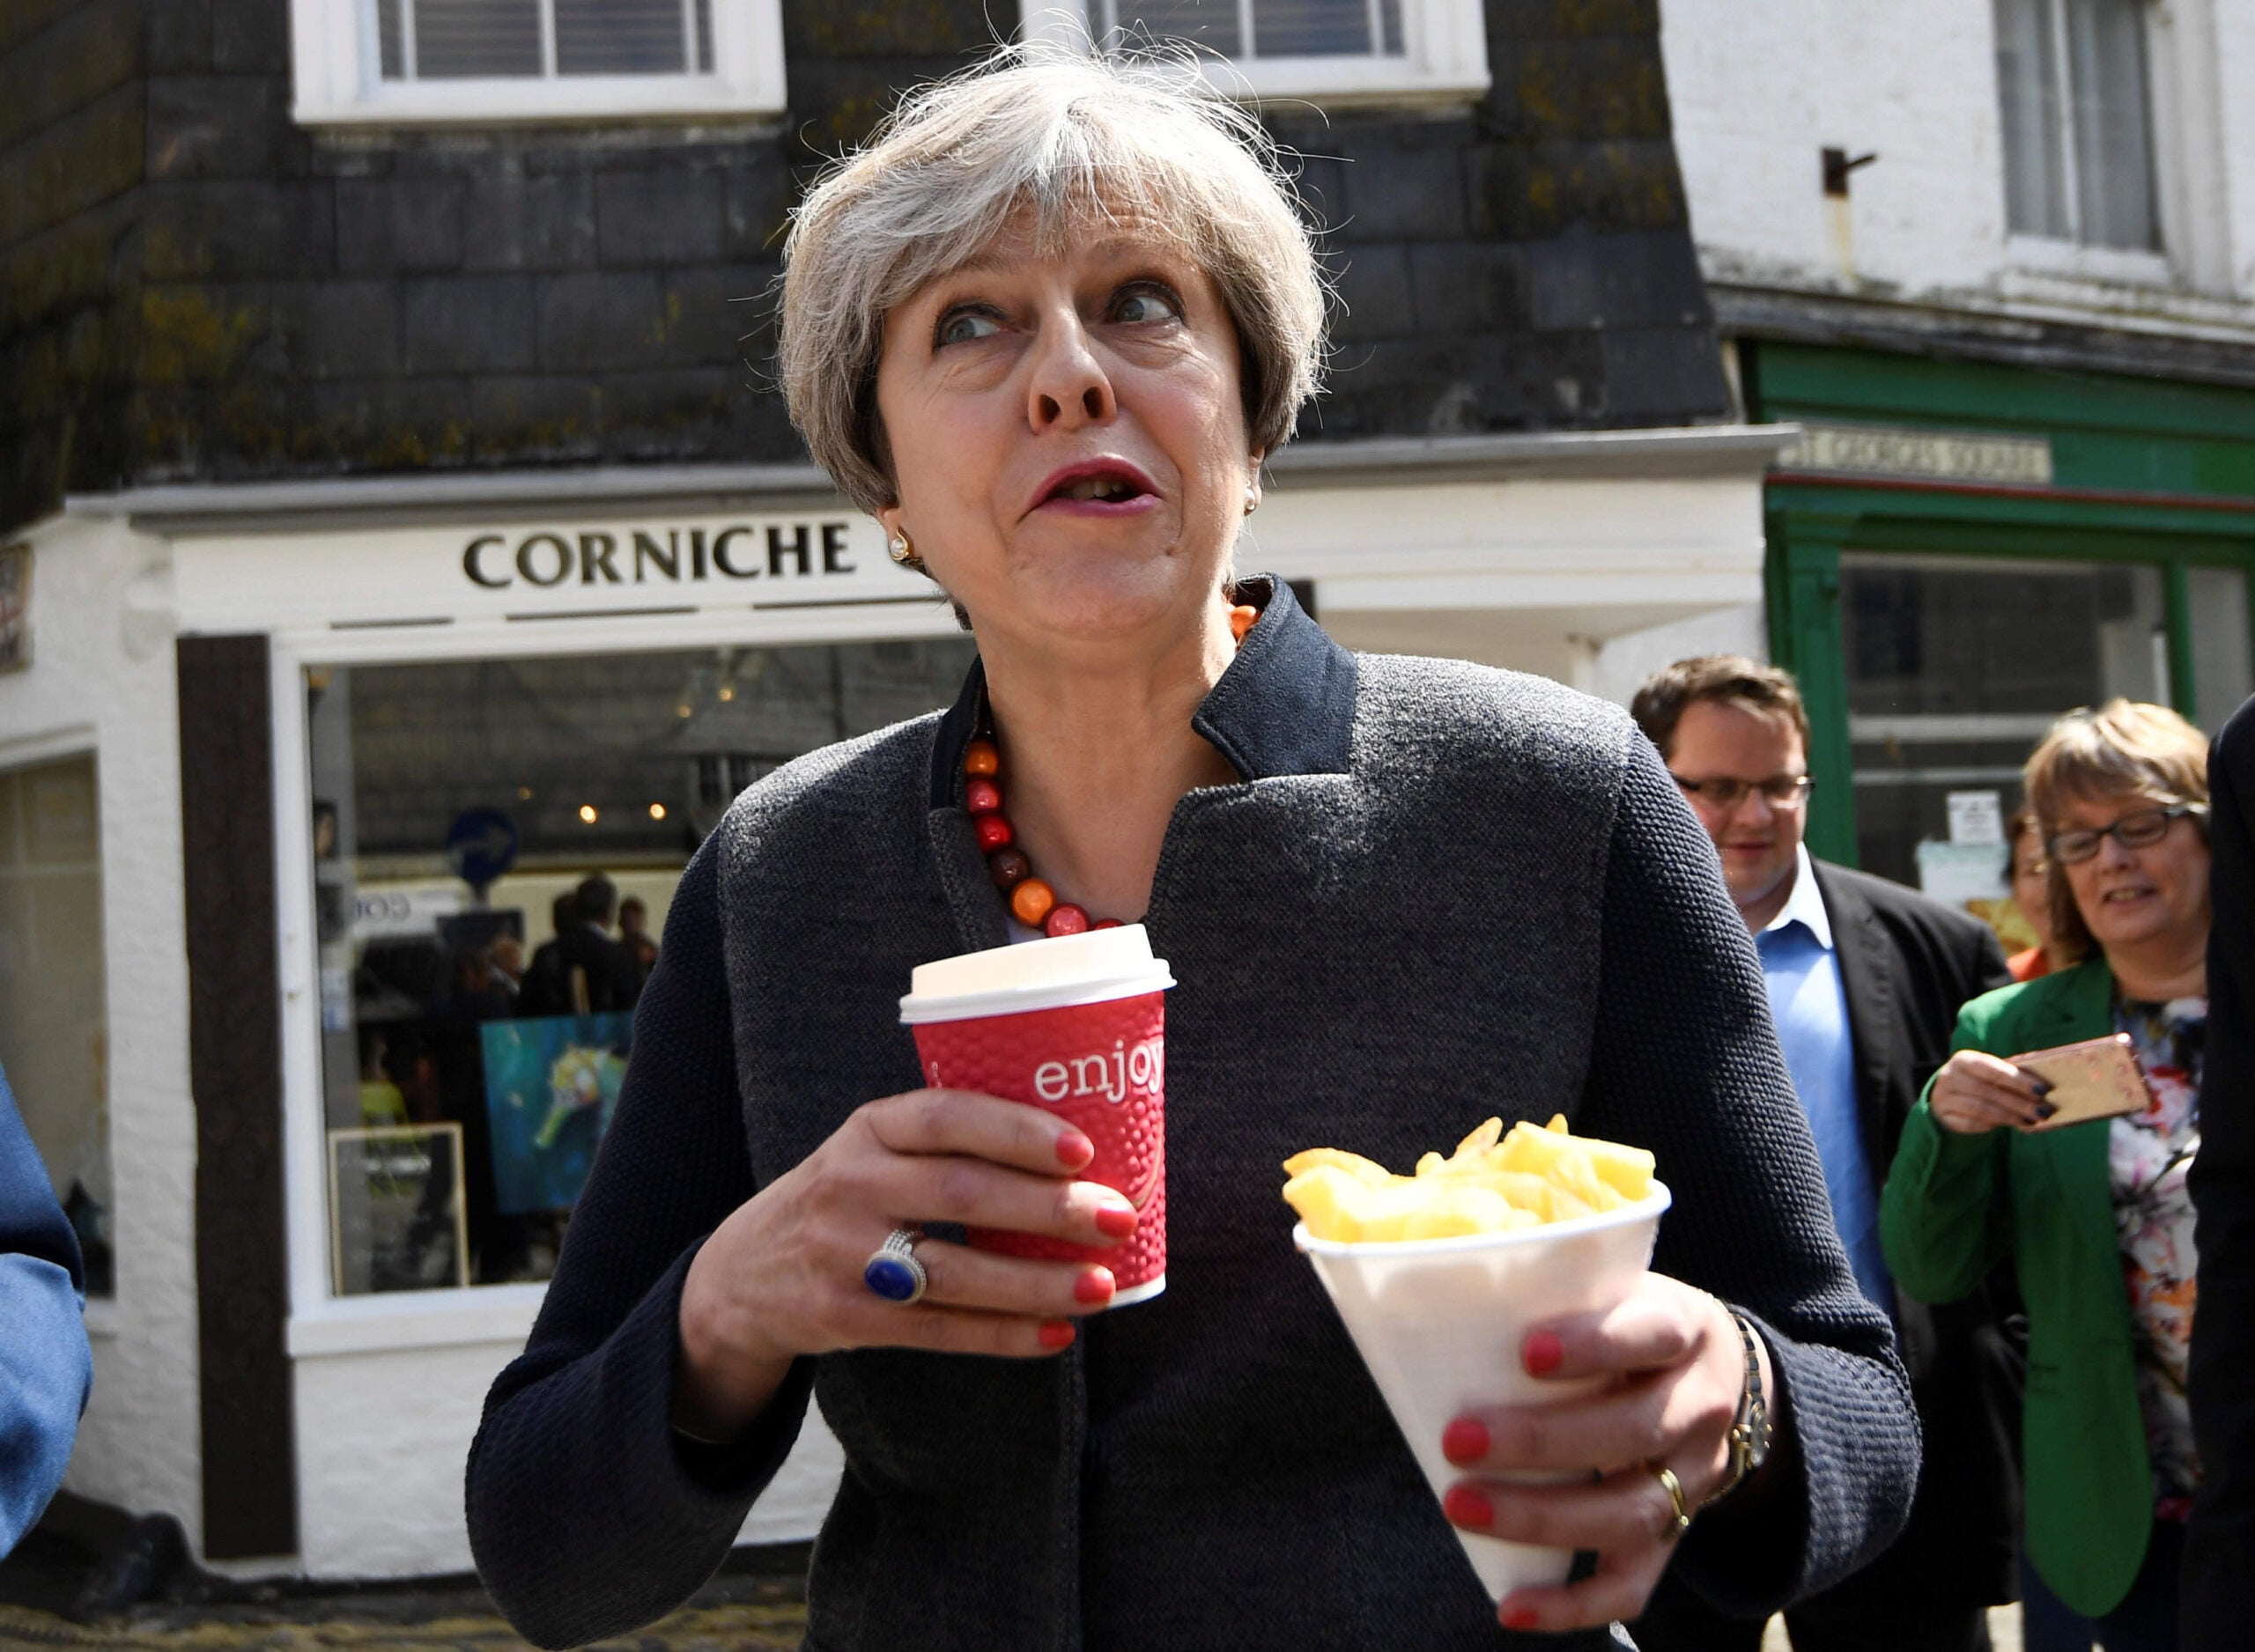 Swapping dinner for crisps? There's a reason Brexit metaphors are all about food